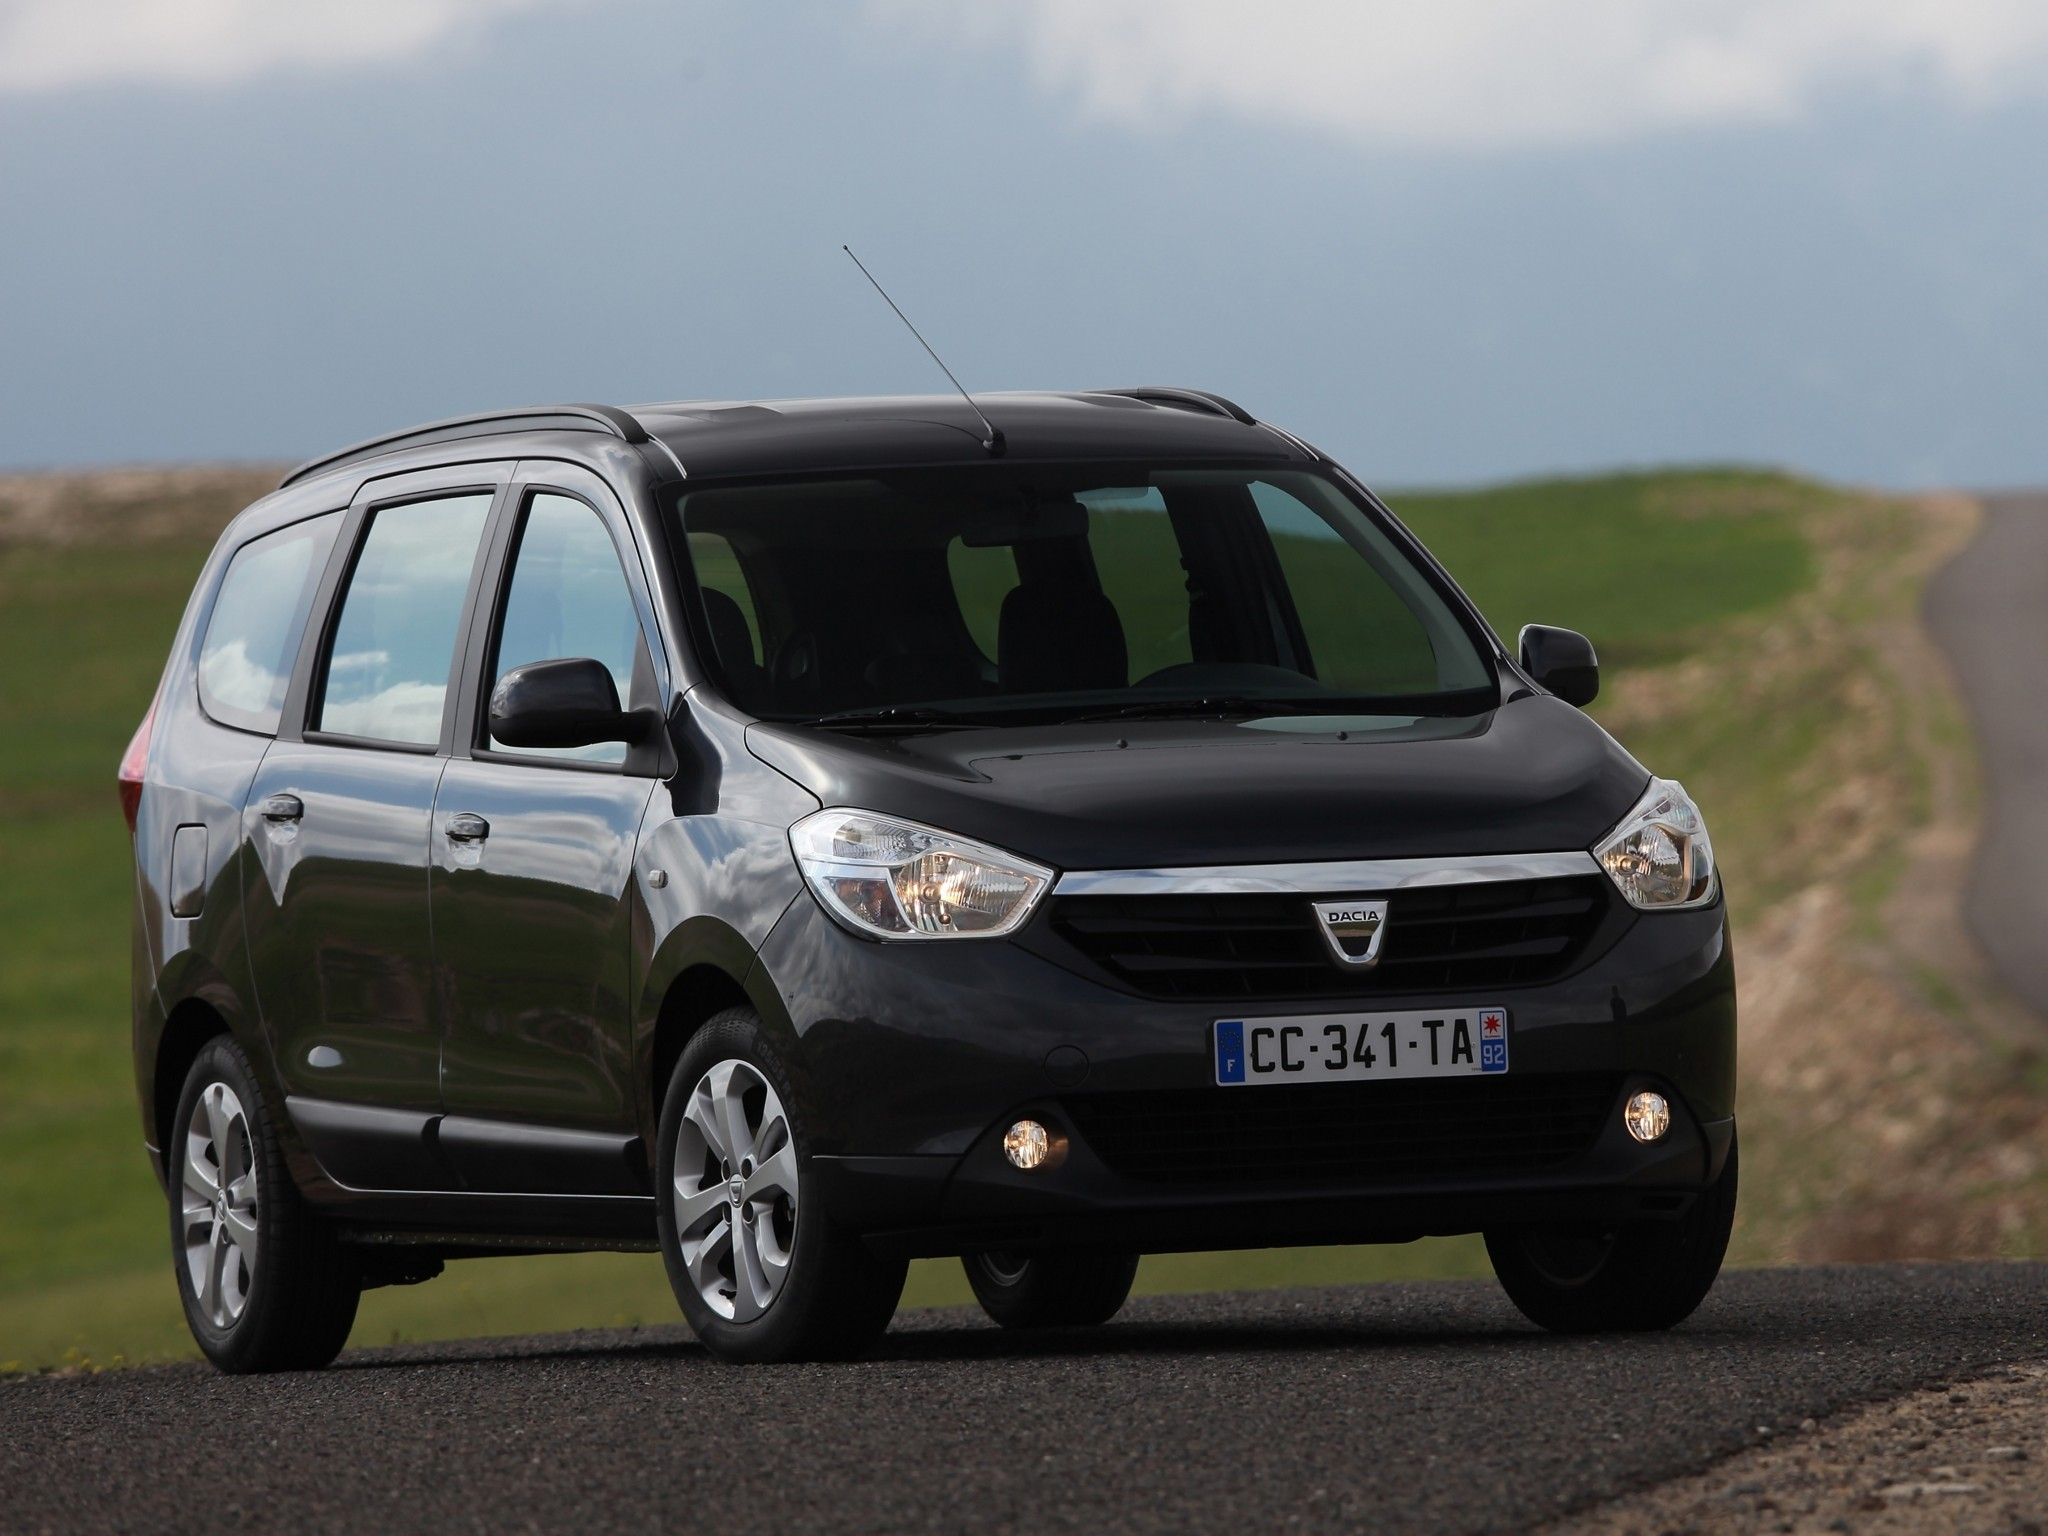 DACIA Lodgy specs & photos - 2012, 2013, 2014, 2015, 2016, 2017, 2018, 2019 - autoevolution